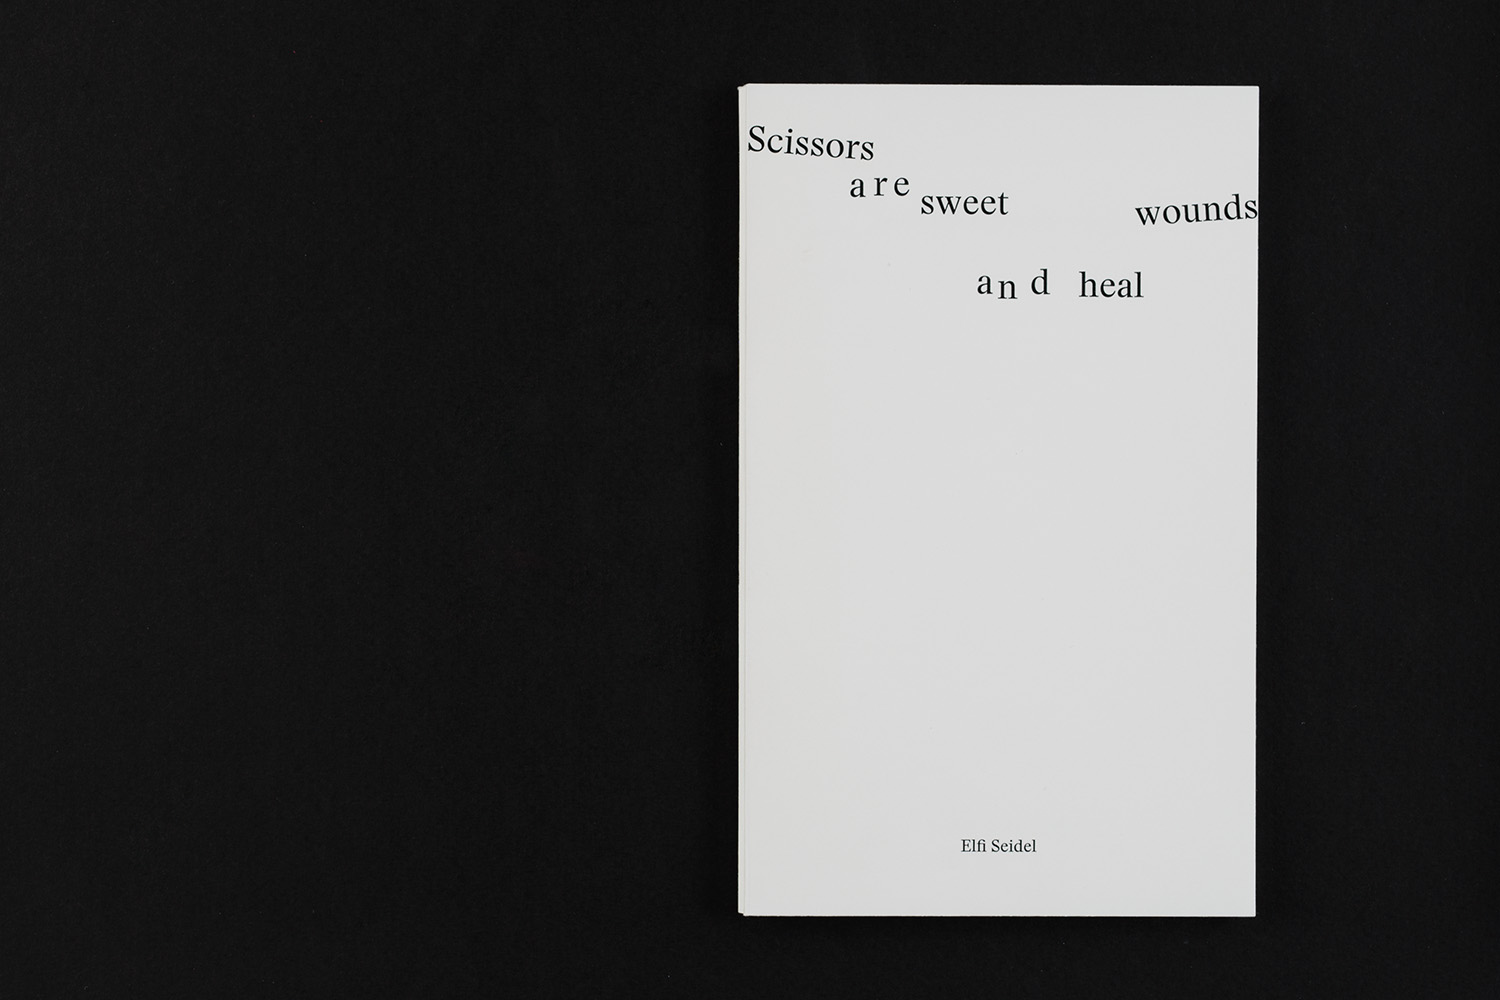 Elfi Seidel, Scissors are sweet and heal wounds, 2017